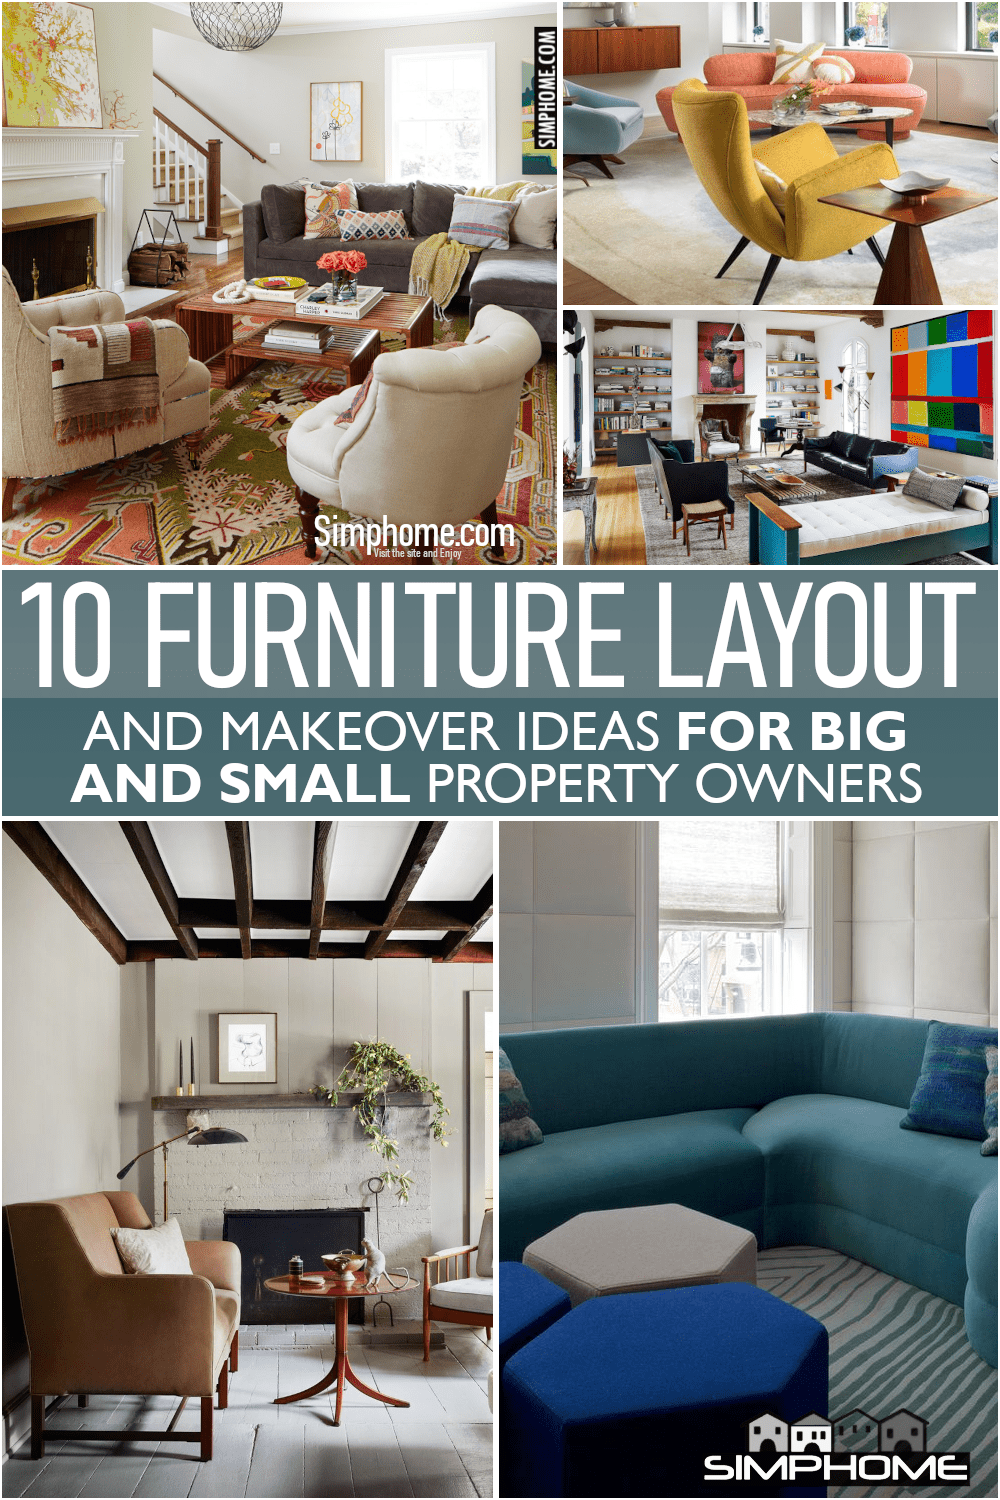 10 Furniture Layout for Big or Small Space via Simphome.comFeatured